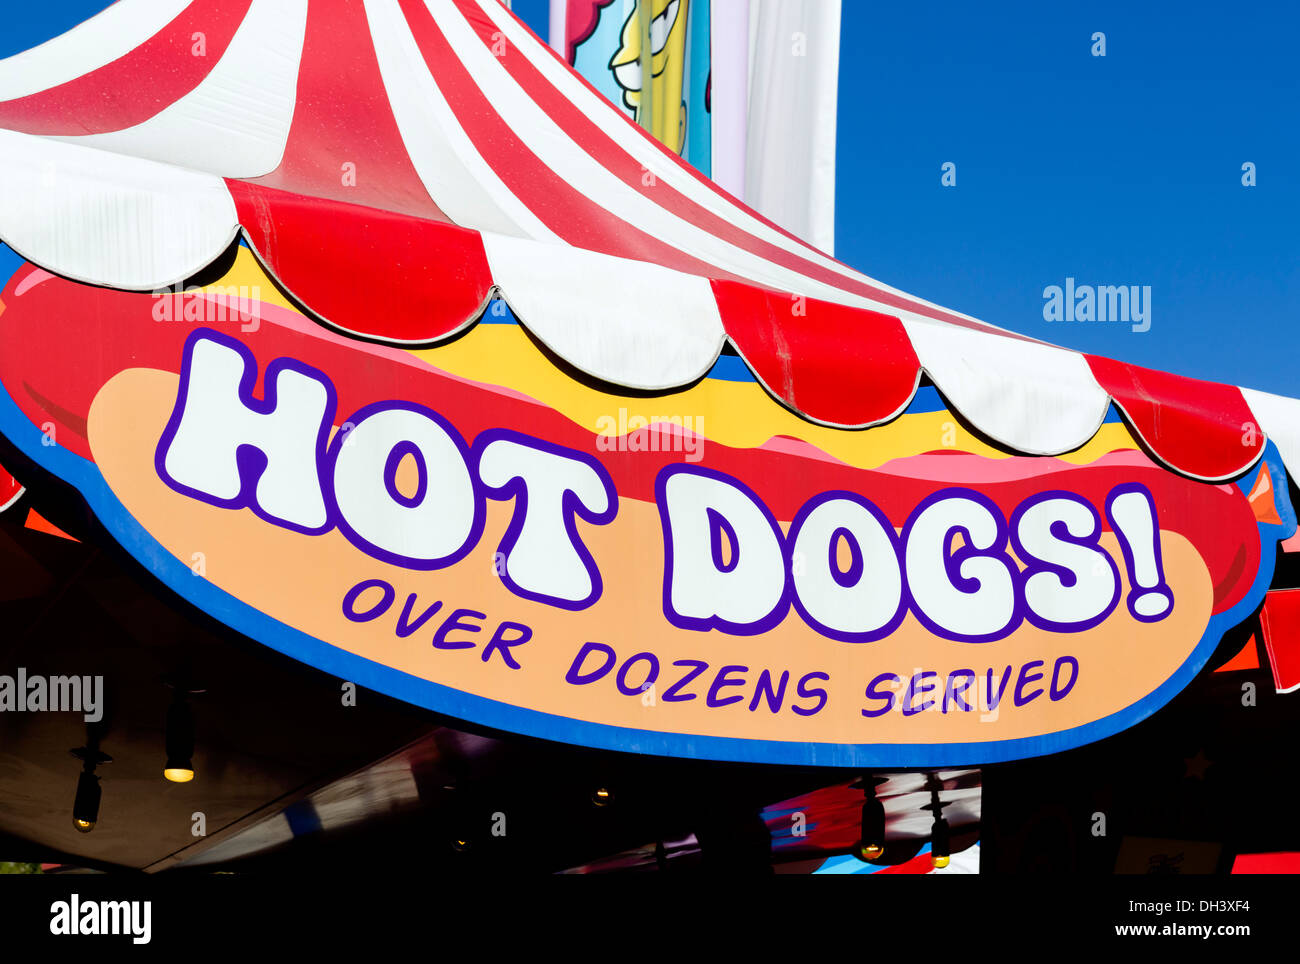 Hot dog stand in the Simpsons area at Universal Studios, Universal Orlando Resort, Orlando, Central Florida, USA - Stock Image